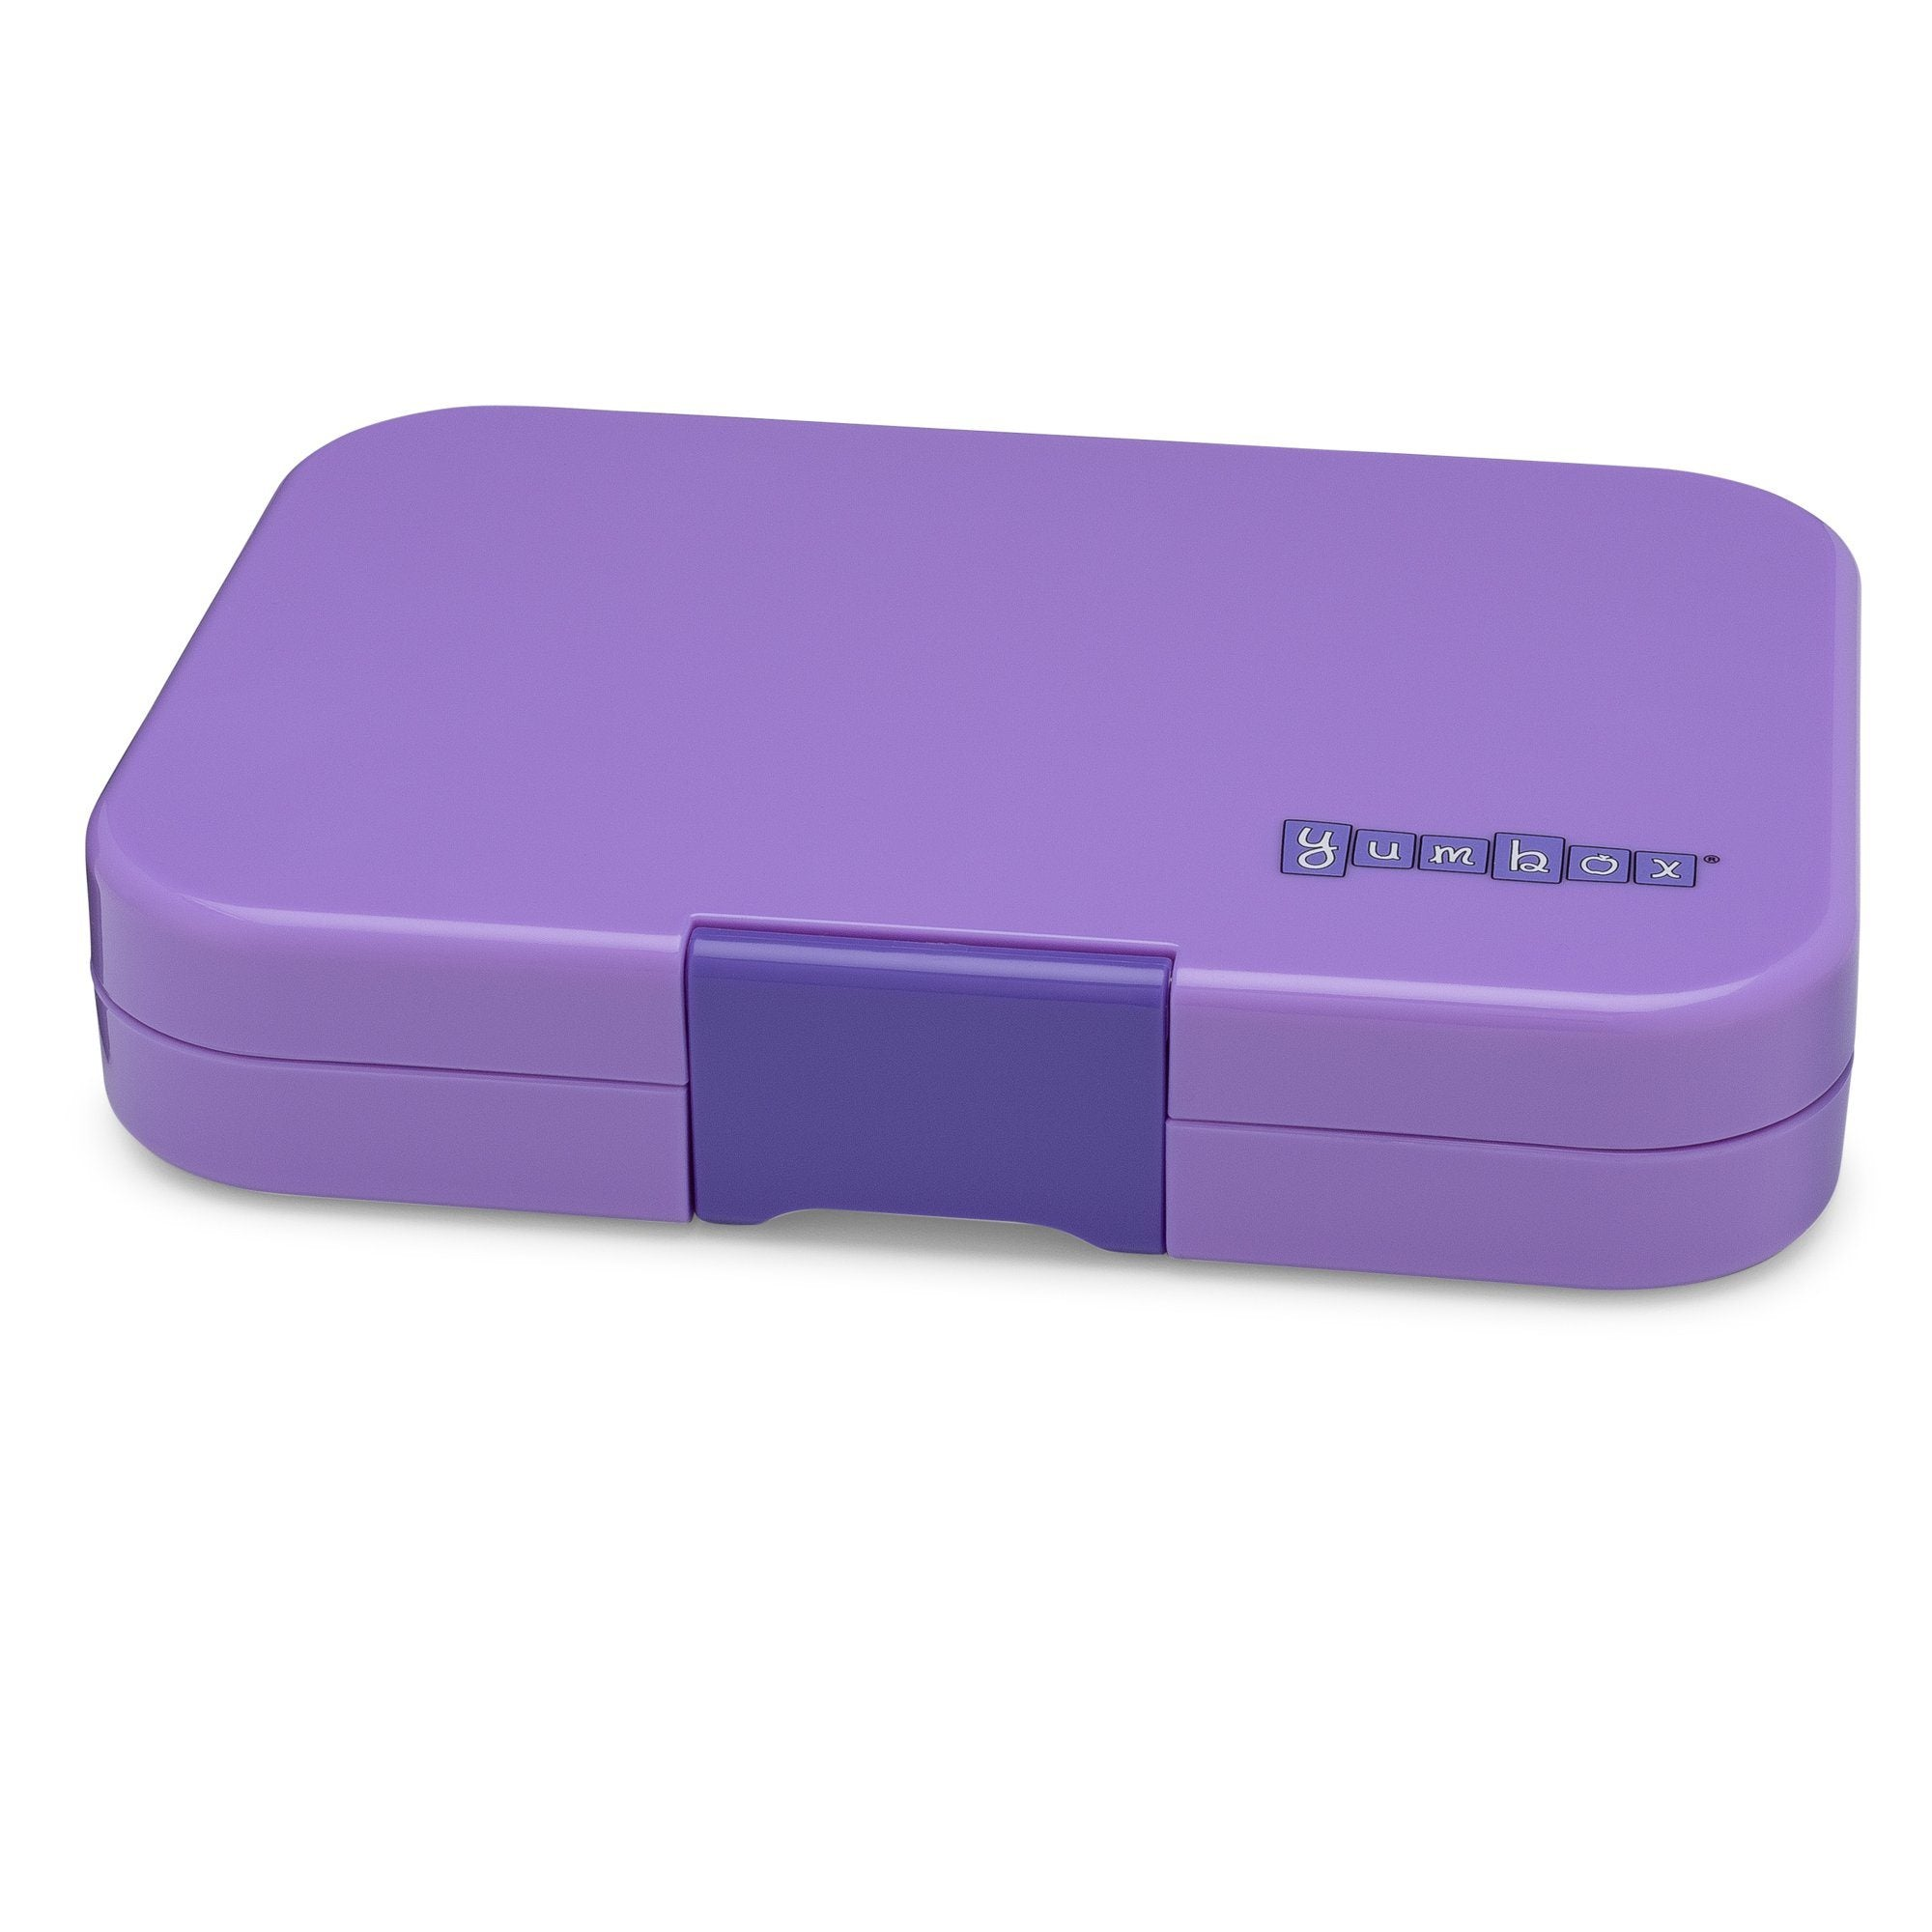 Yumbox - Tapas / 5 Compartment - Dreamy Purple Meal Time Yumbox